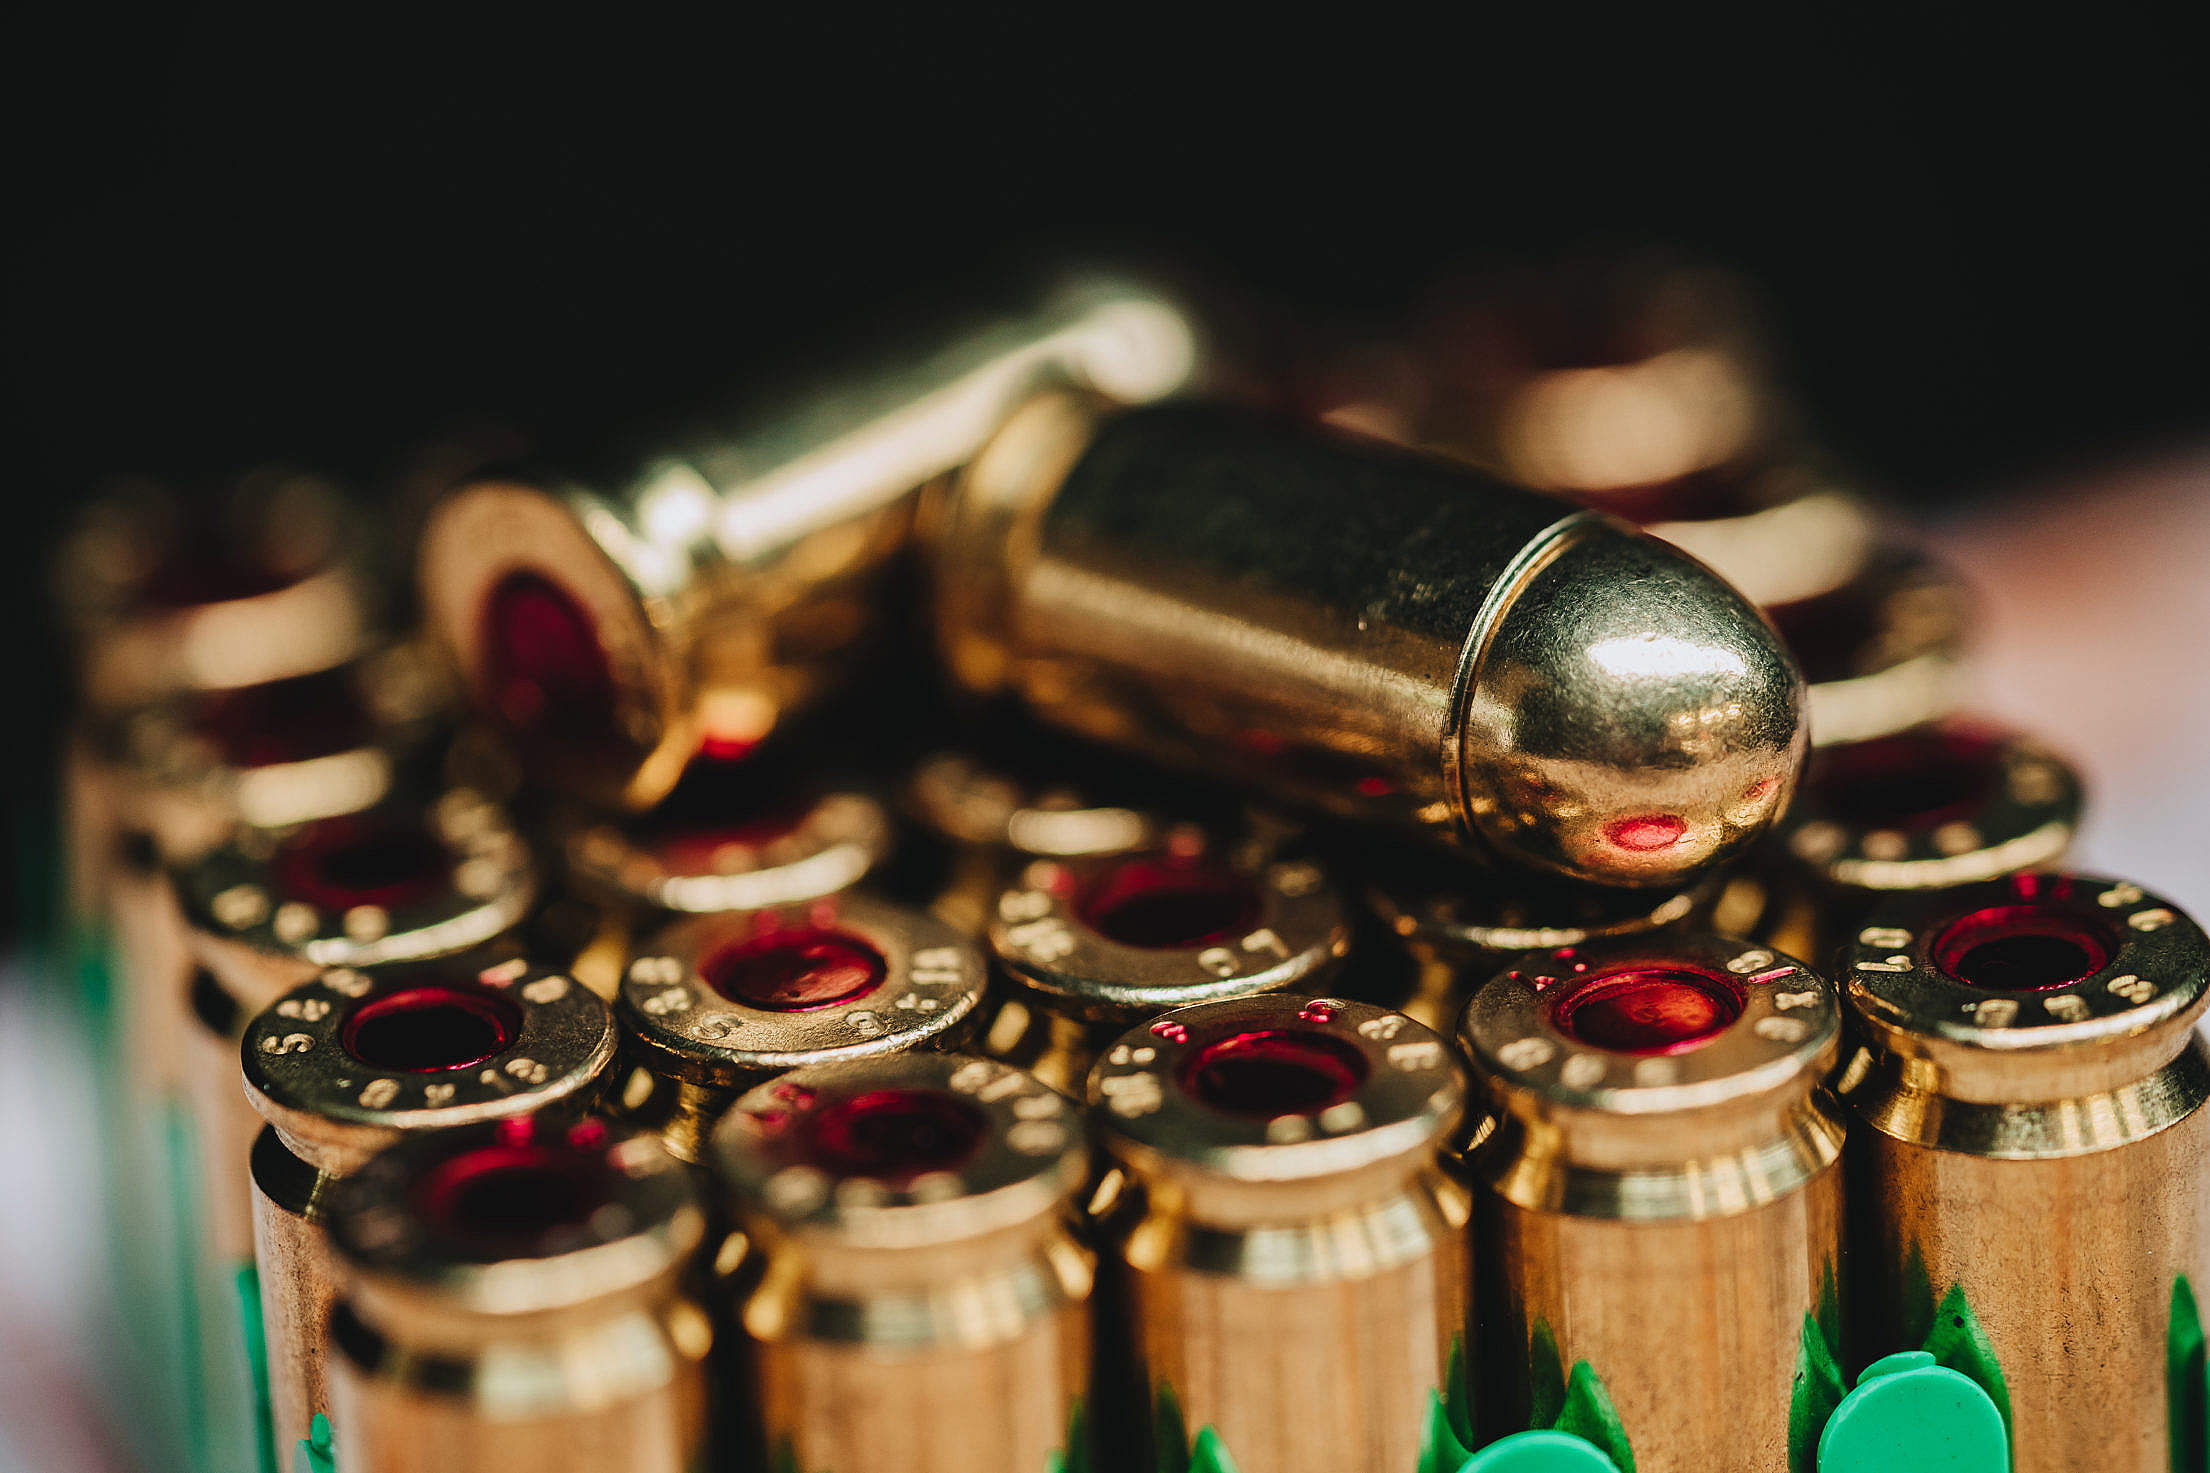 Handgun 9mm Luger Bullets Free Stock Photo